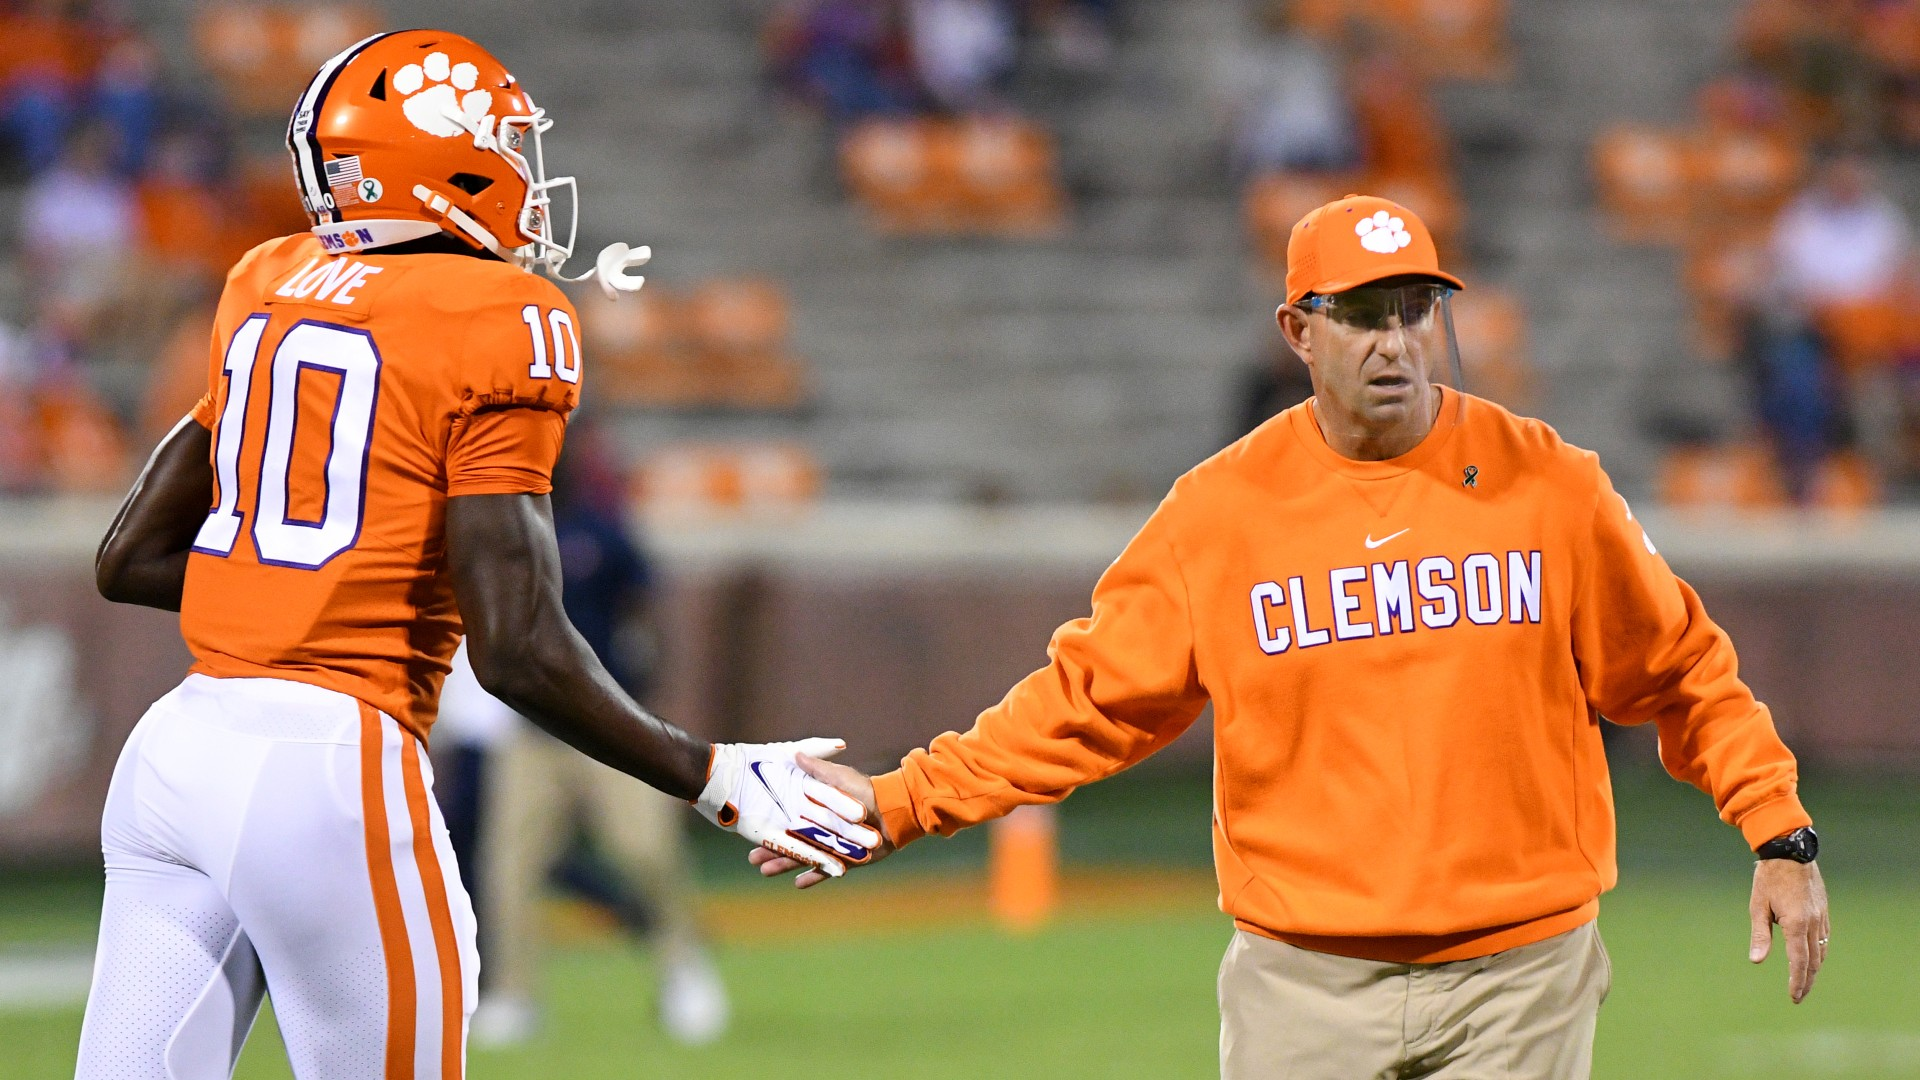 Saturday College Football Odds & Best Bets: Our Staff's Betting Picks for Clemson vs. Miami, Mississippi State vs. Kentucky & More (Oct. 10) article feature image